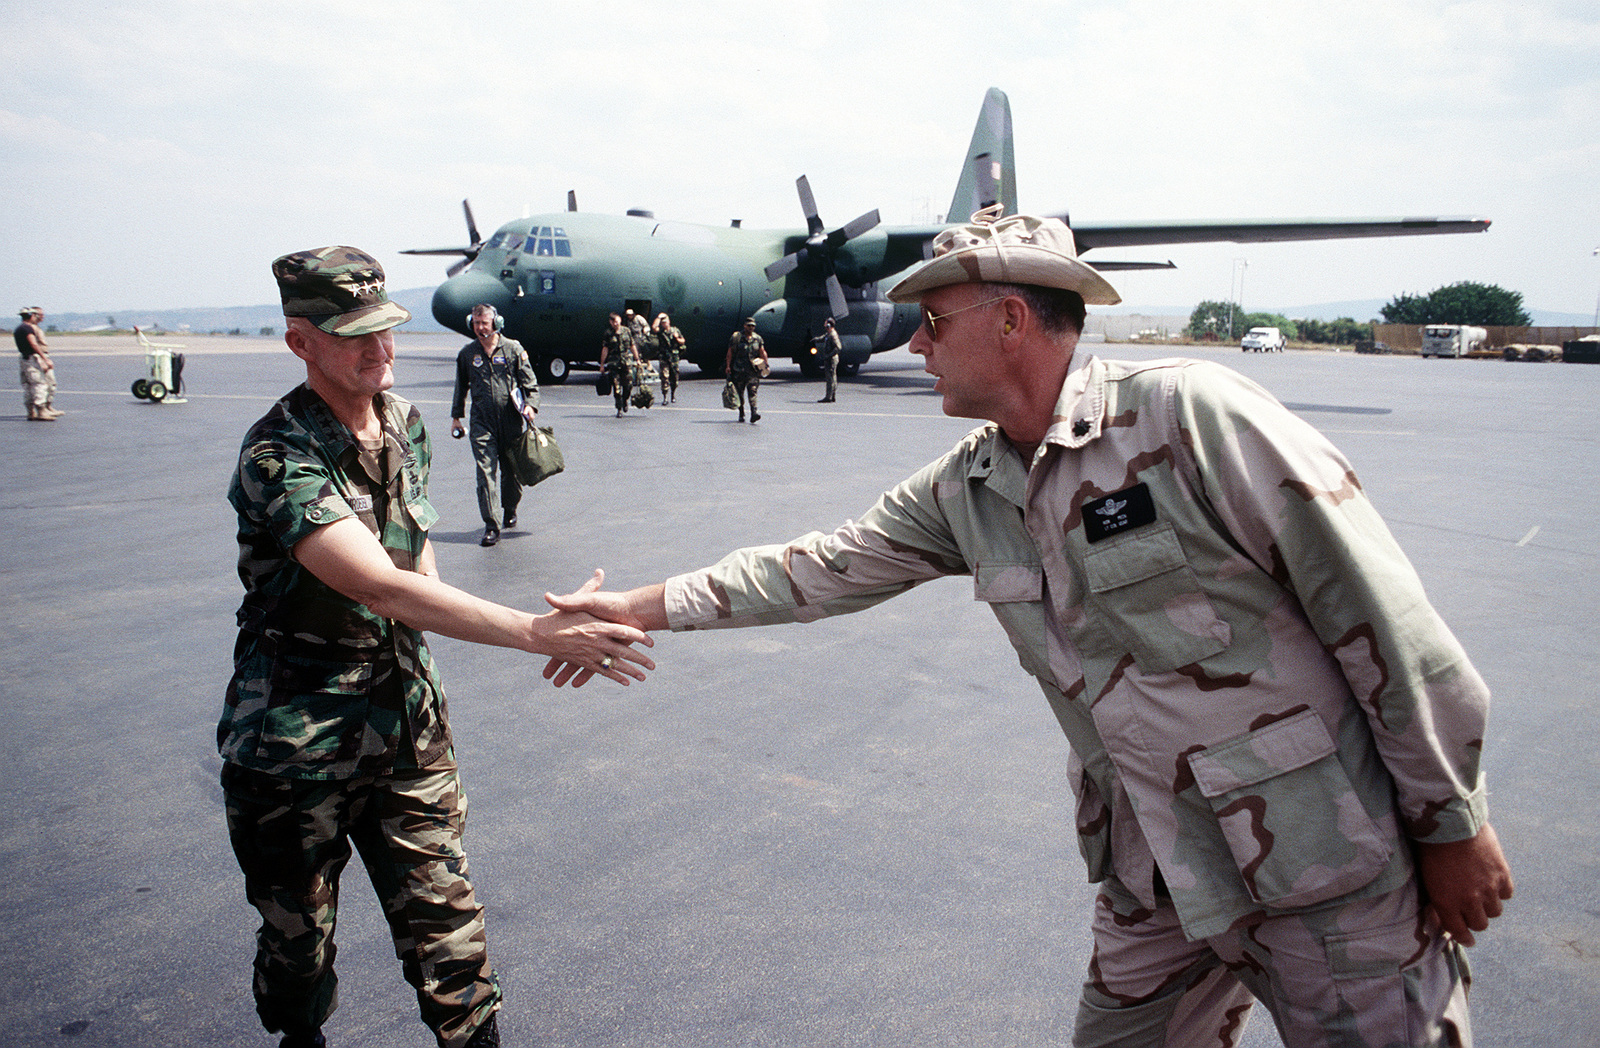 LGEN Daniel Schroeder, U.S. Army, Commander Joint Task Force (JTF) is greeted by LCOL Ron Peck, Commander, 21st Air Mobility Operations Group (AMOG) Dover AFB, Denver, upon his arrival at Kigali Airport to check on status of the relief operation